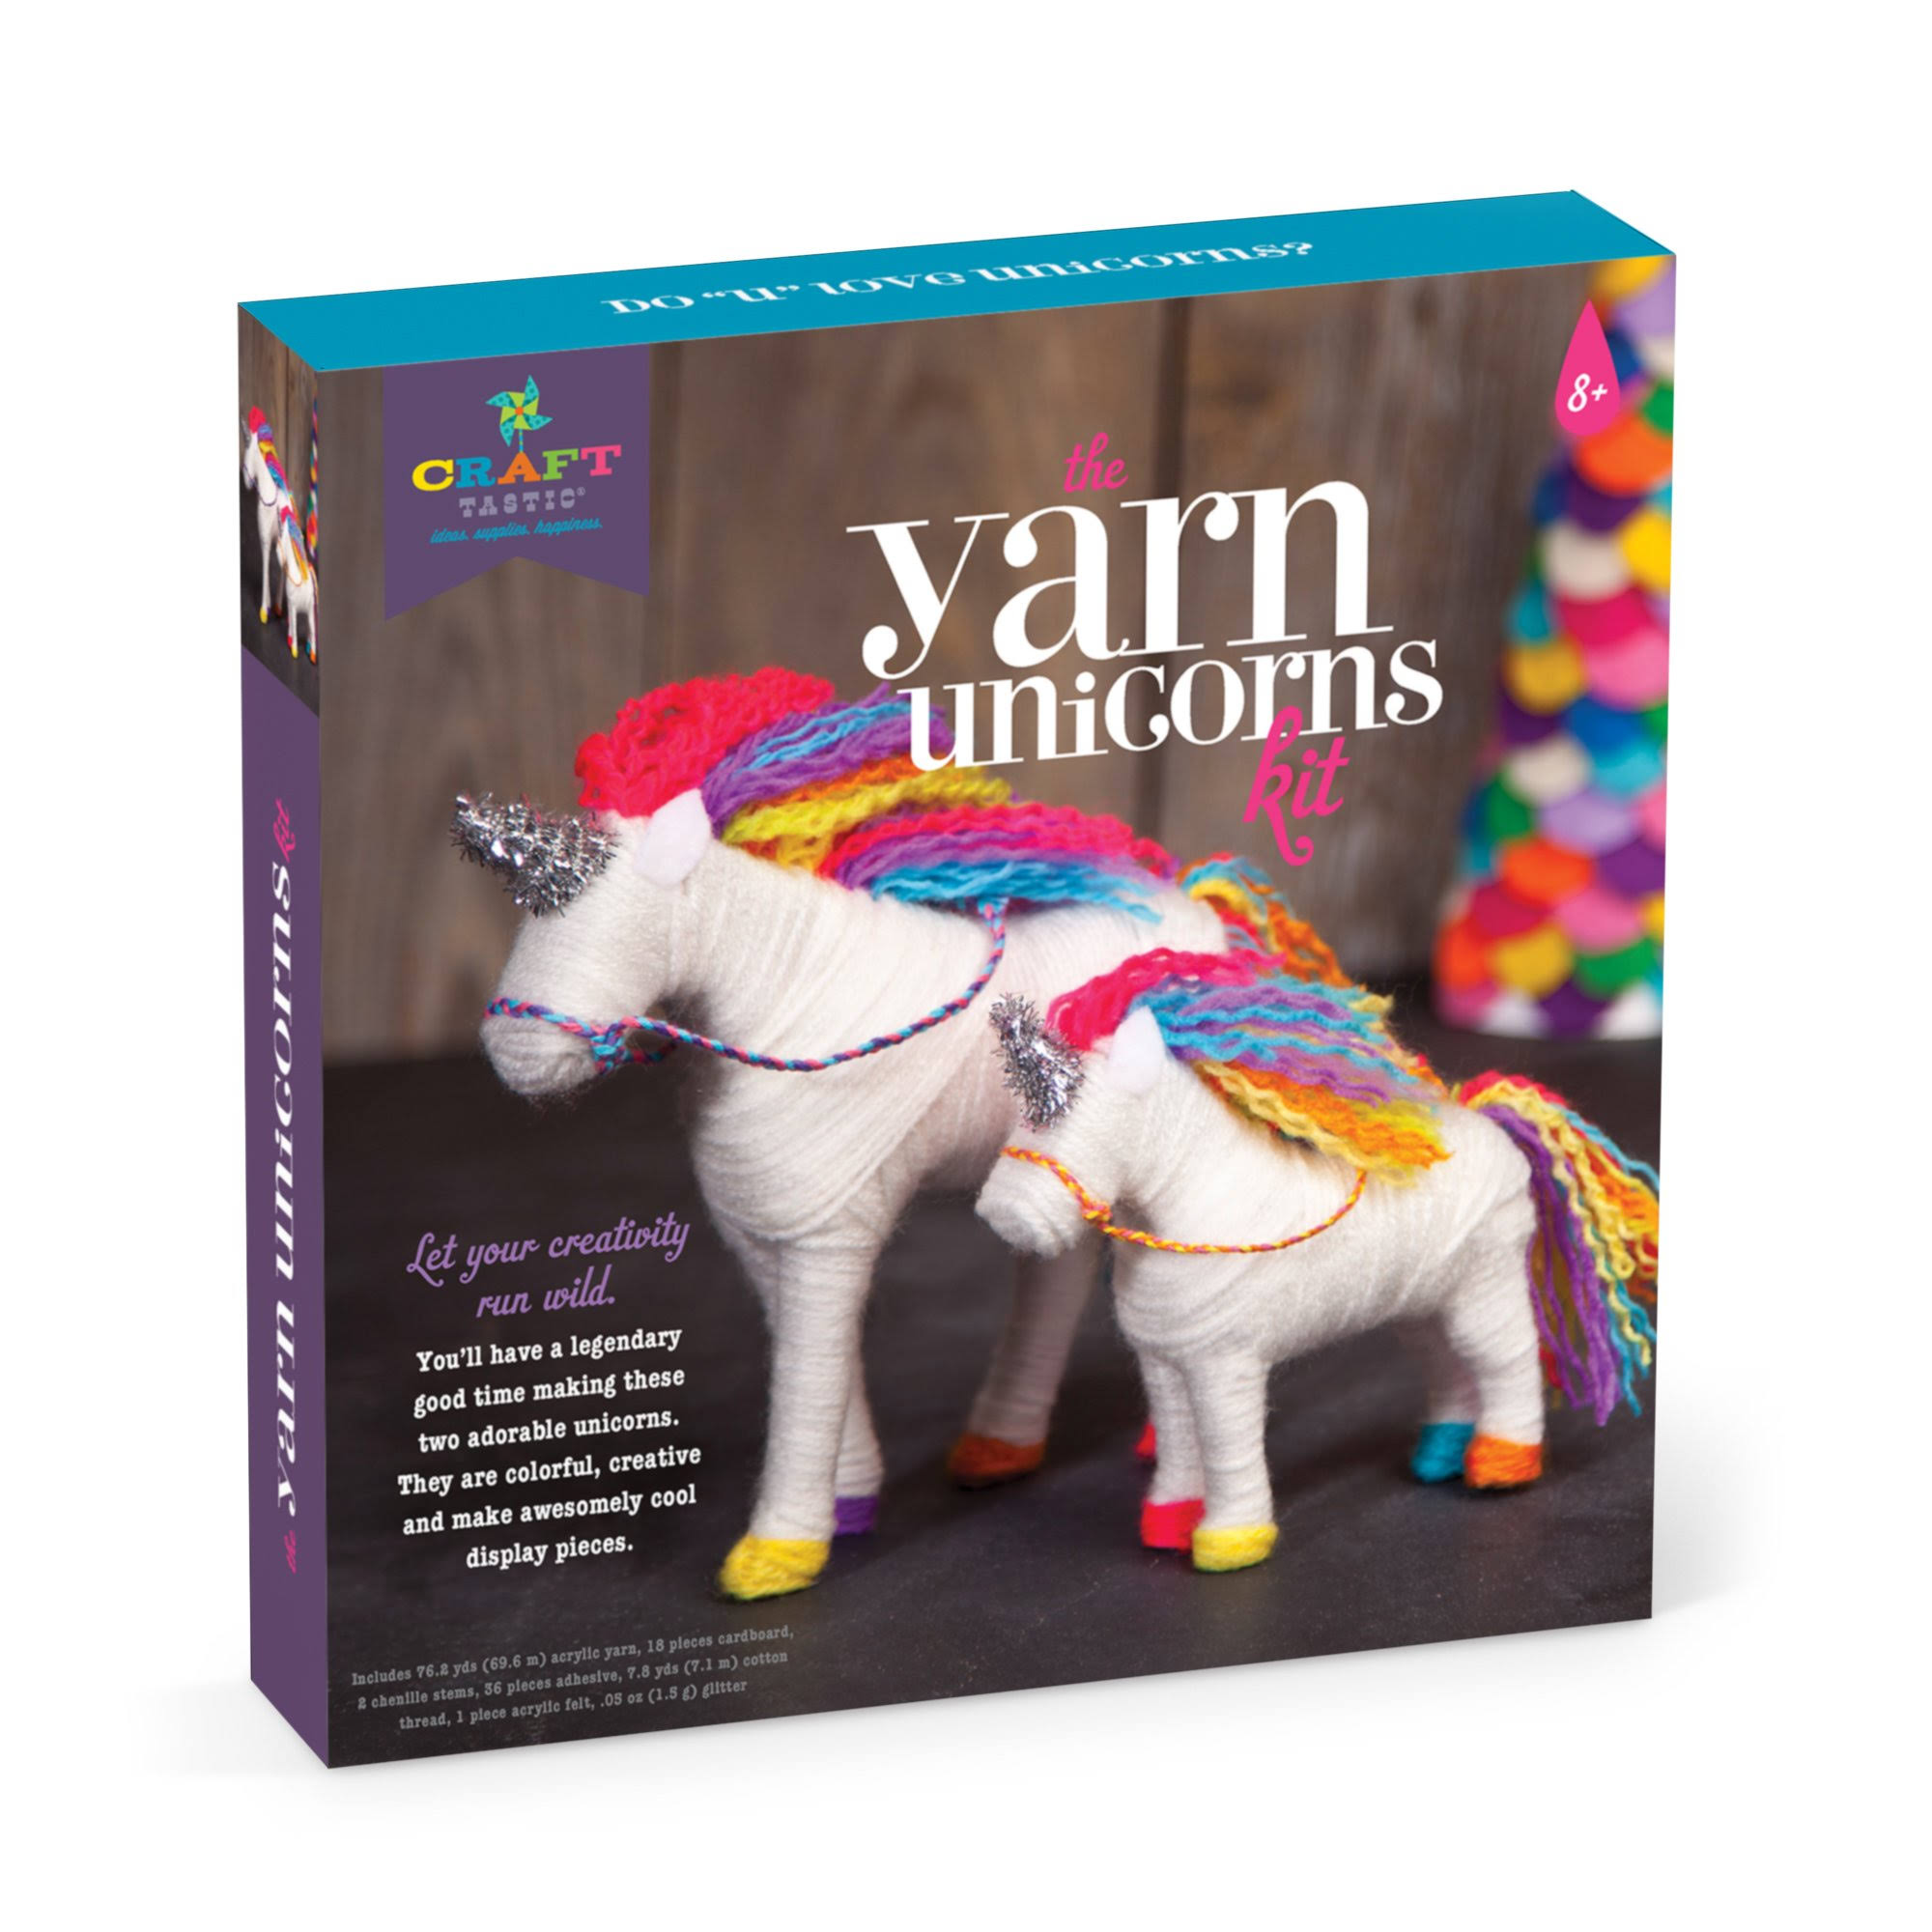 Craft - Tastic Yarn Unicorns Kit